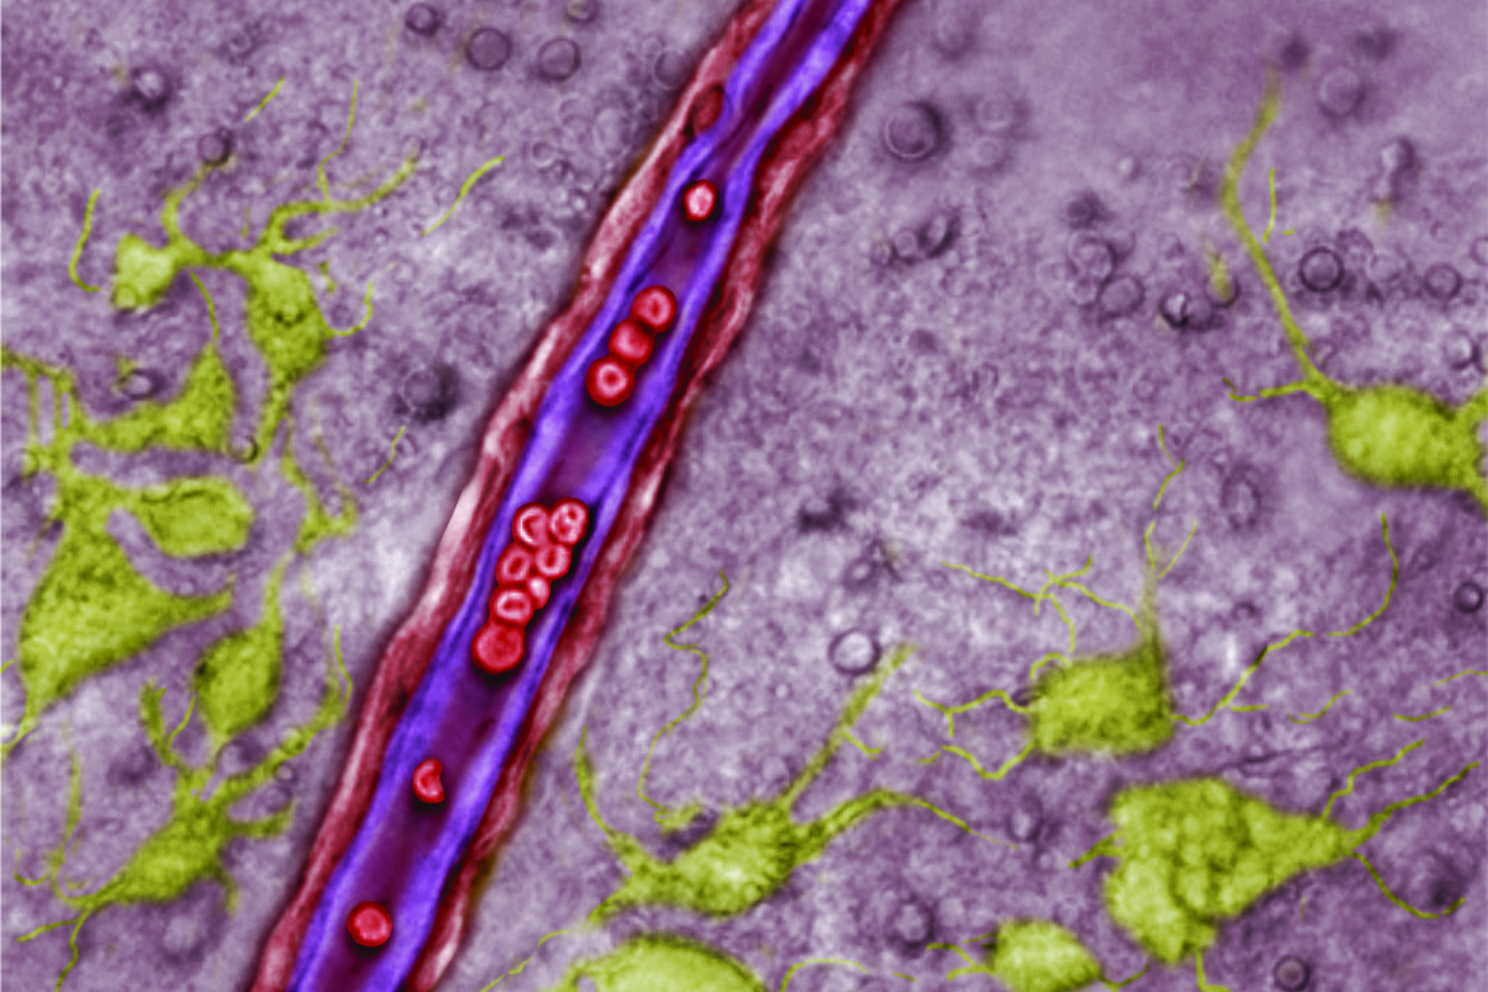 A blood vessel in the retrotrapezoid nucleus (RTN). Endothelial cells lining the vessel are purple, red blood cells are red, and neurons are green. Astrocytes are not identified in this image, but would be among the greyed background cells. (Dan Mulkey/UConn Image)